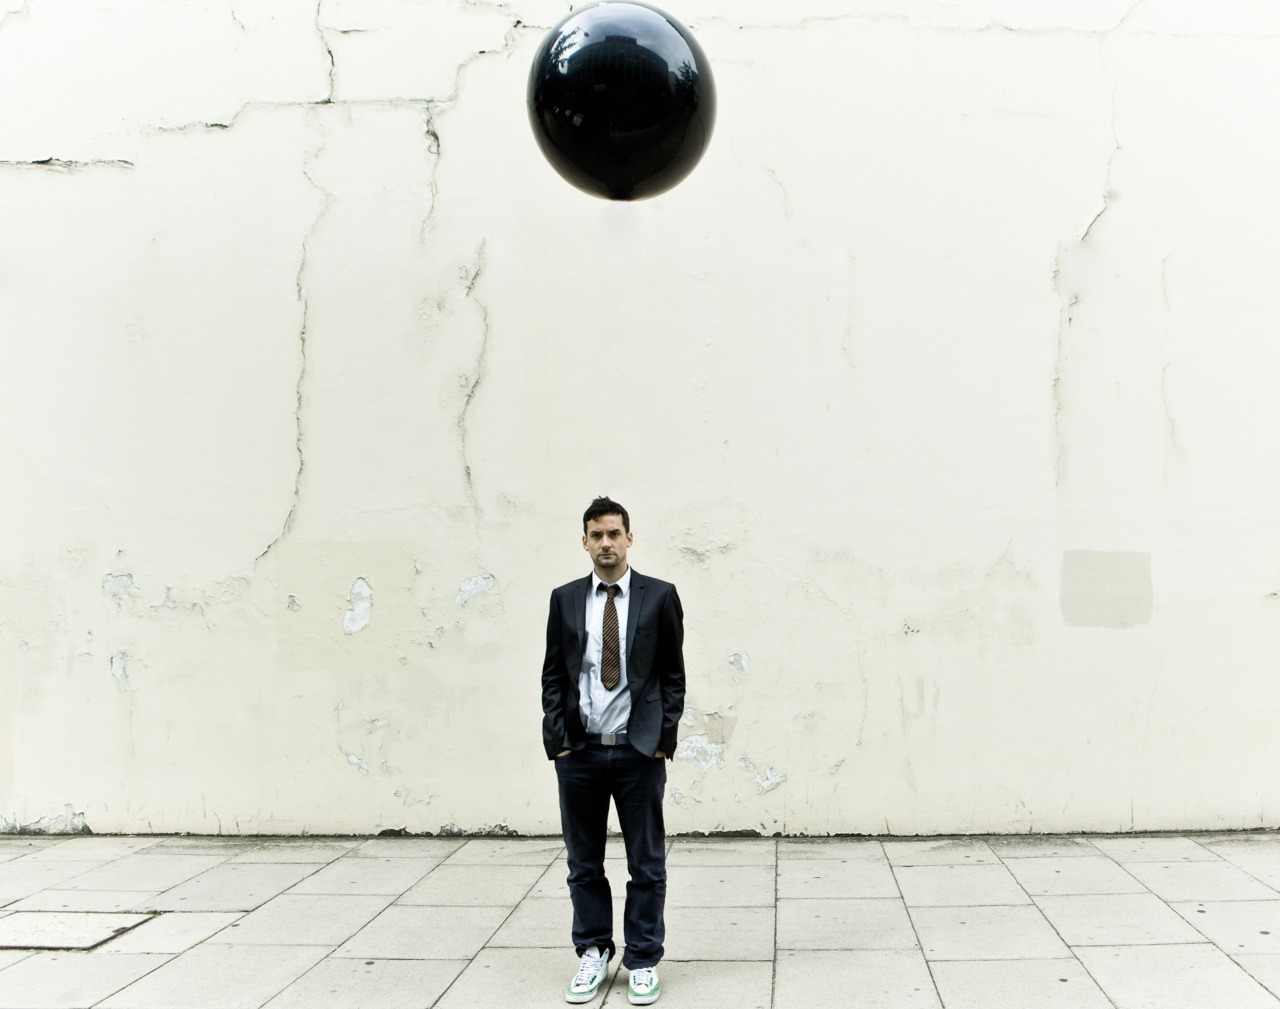 "Over the last couple of years Bonobo has become one of the premier artists on the Ninja Tune imprint and certainly one of the most listened to, with over 16 million plays recorded on LastFm. His combination of superb live shows and studio wizardry means that he is now perfectly placed to push on into a yet bigger league. With ""Black Sands"", Bonobo has made the record to achieve it. Tonight Berliners get to witness Bonobo's acclaimed live set and latest release, with Benji B of BBC 1Xtra pedigree and Oye Records' Delfonic in tow. Ninja Tune Night 